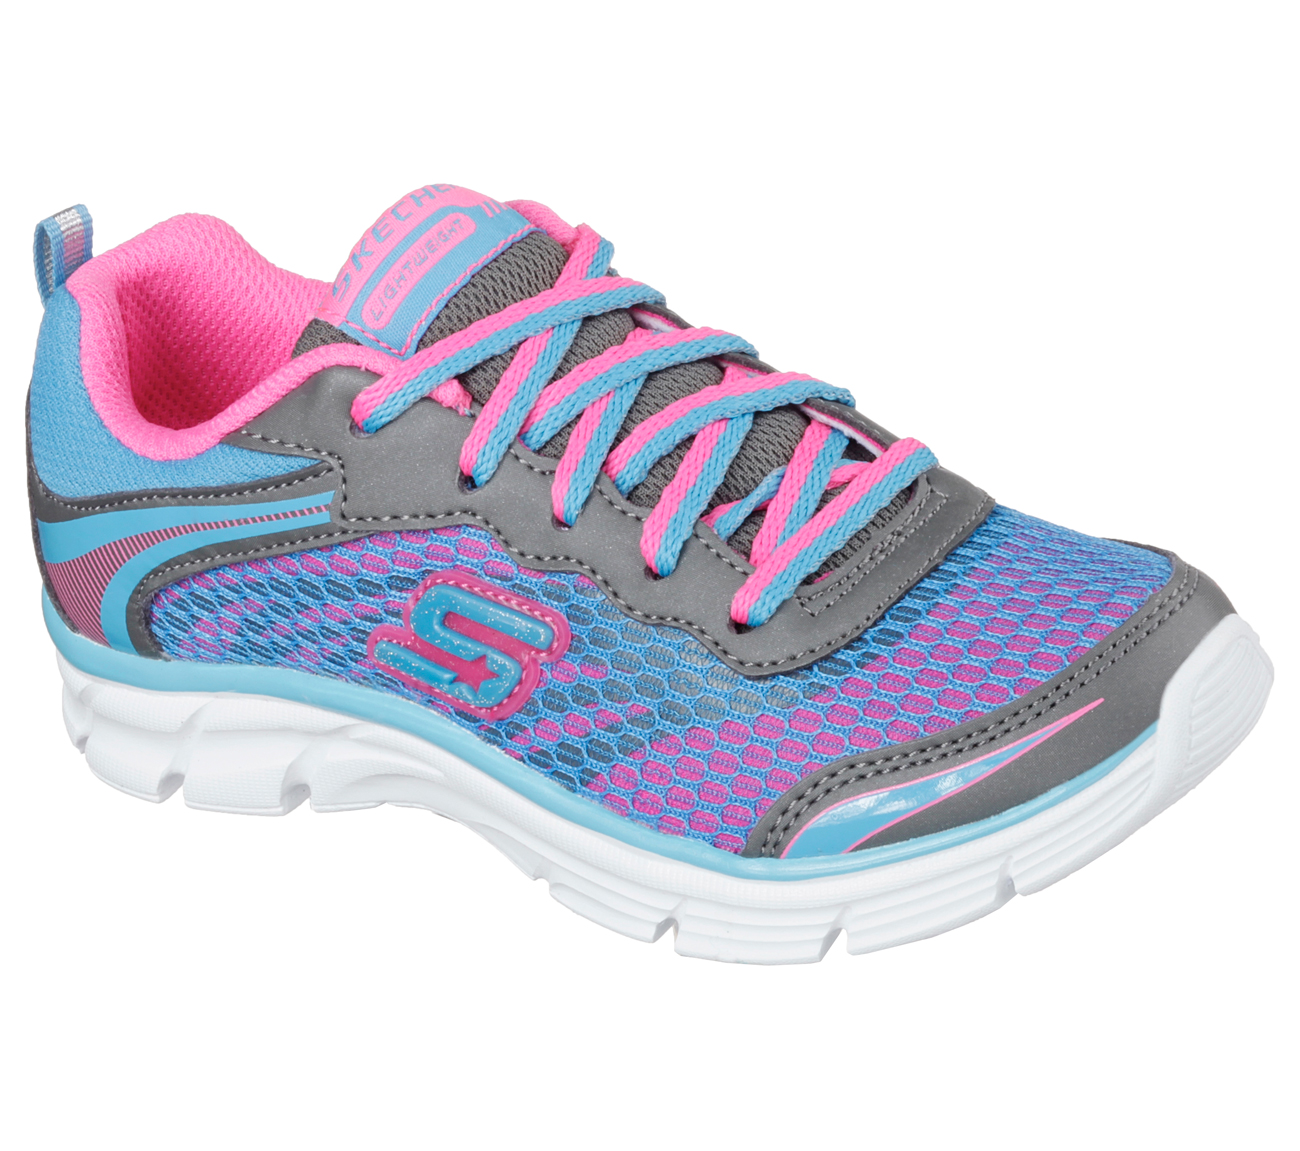 Where To Buy Skechers Shoe Laces